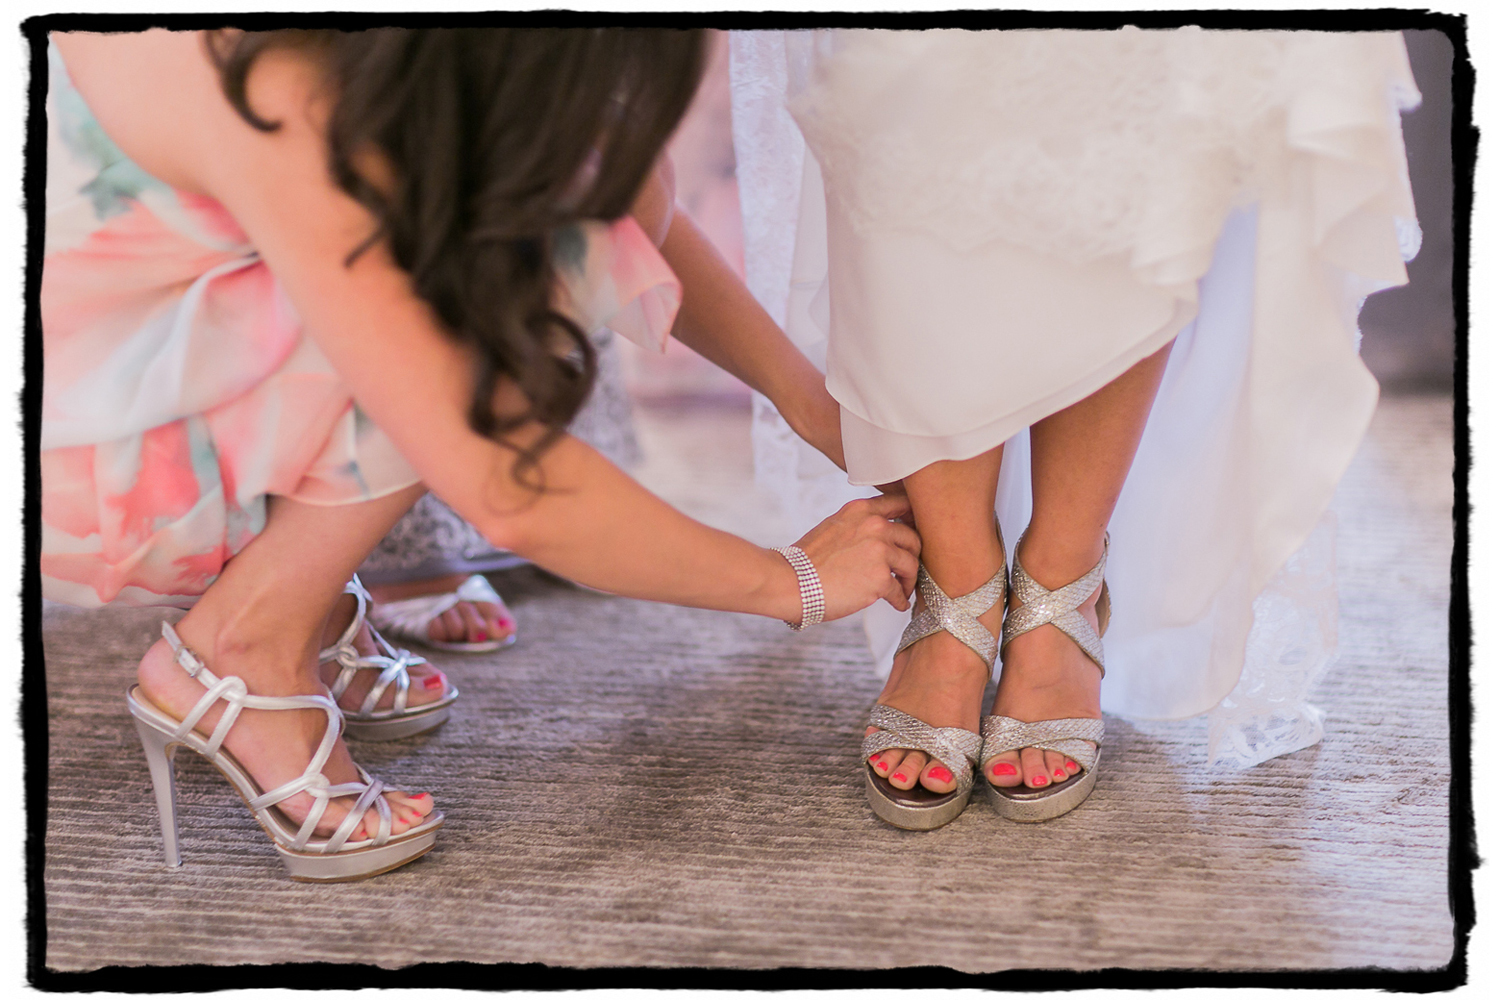 Rorie's bridesmaids help strap on her silvery Jimmy Choos.